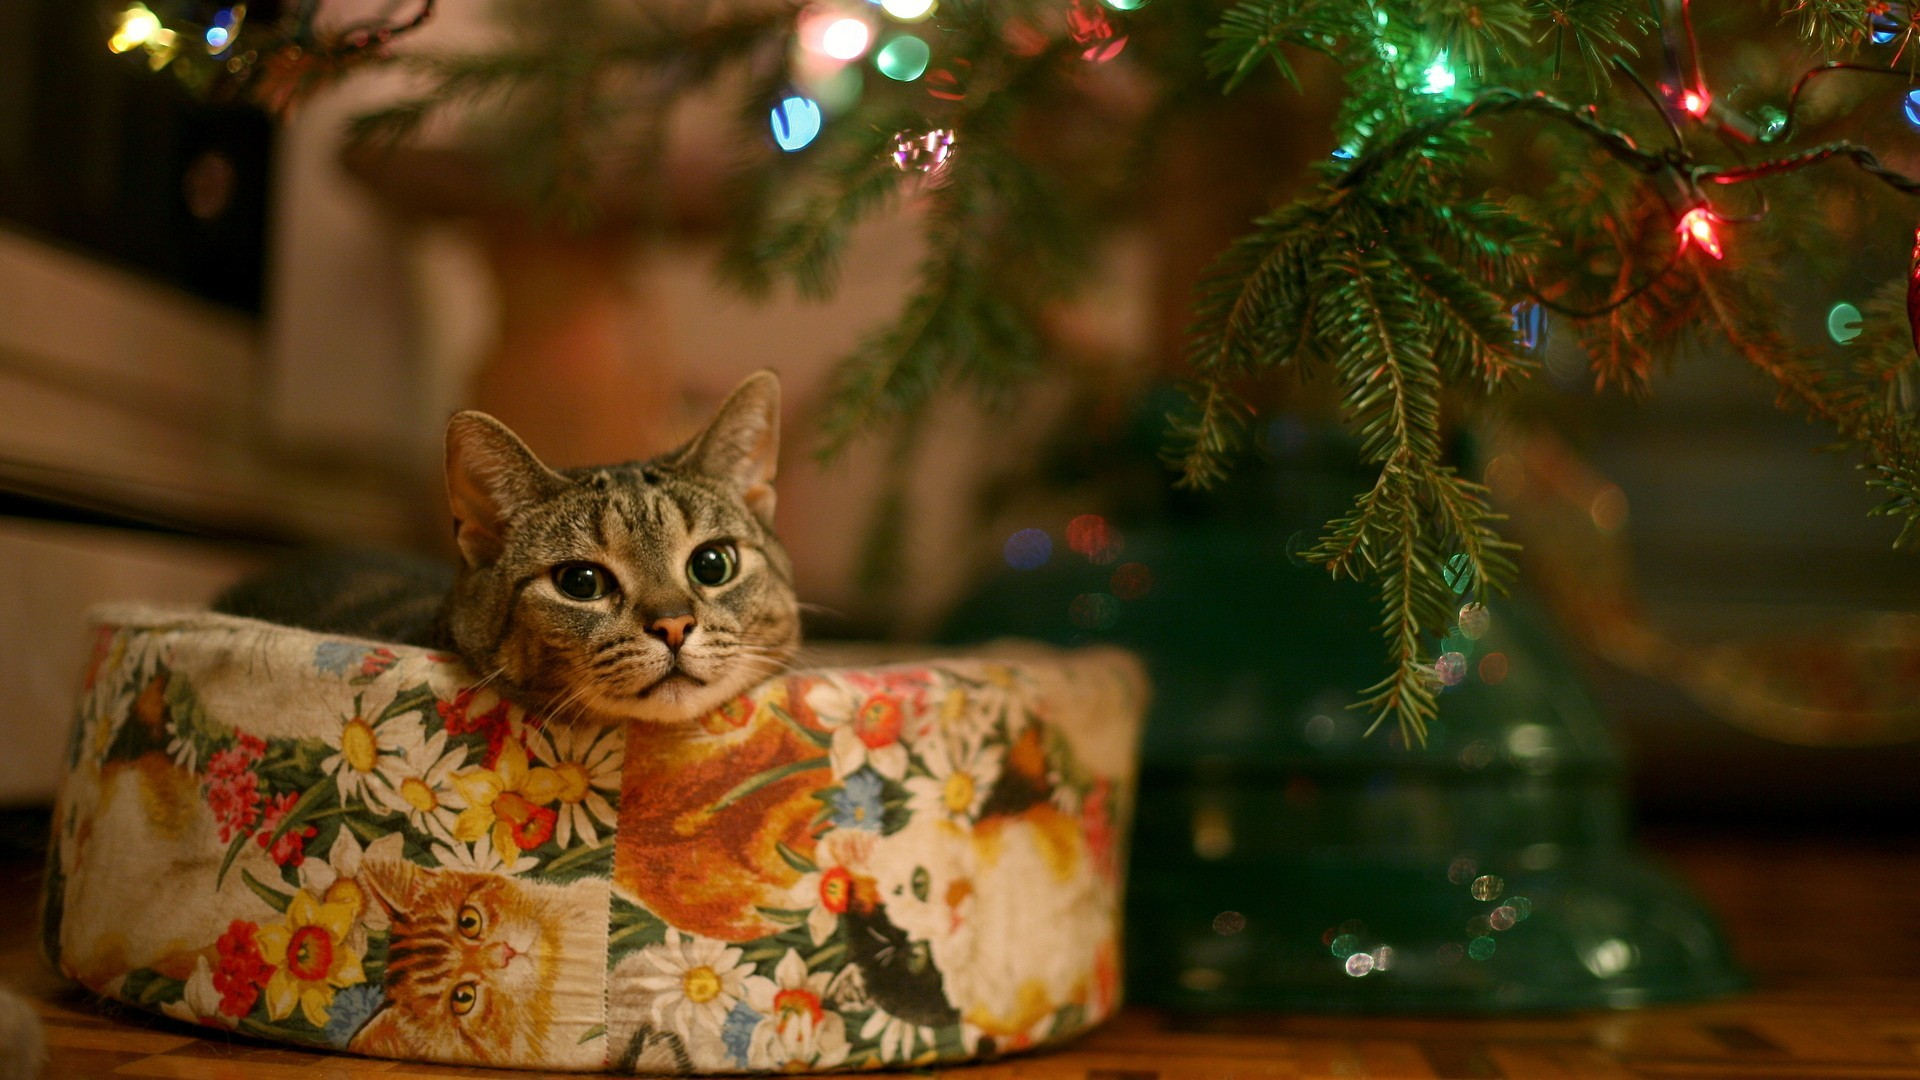 1920x1080 Christmas Kitty Wallpaper